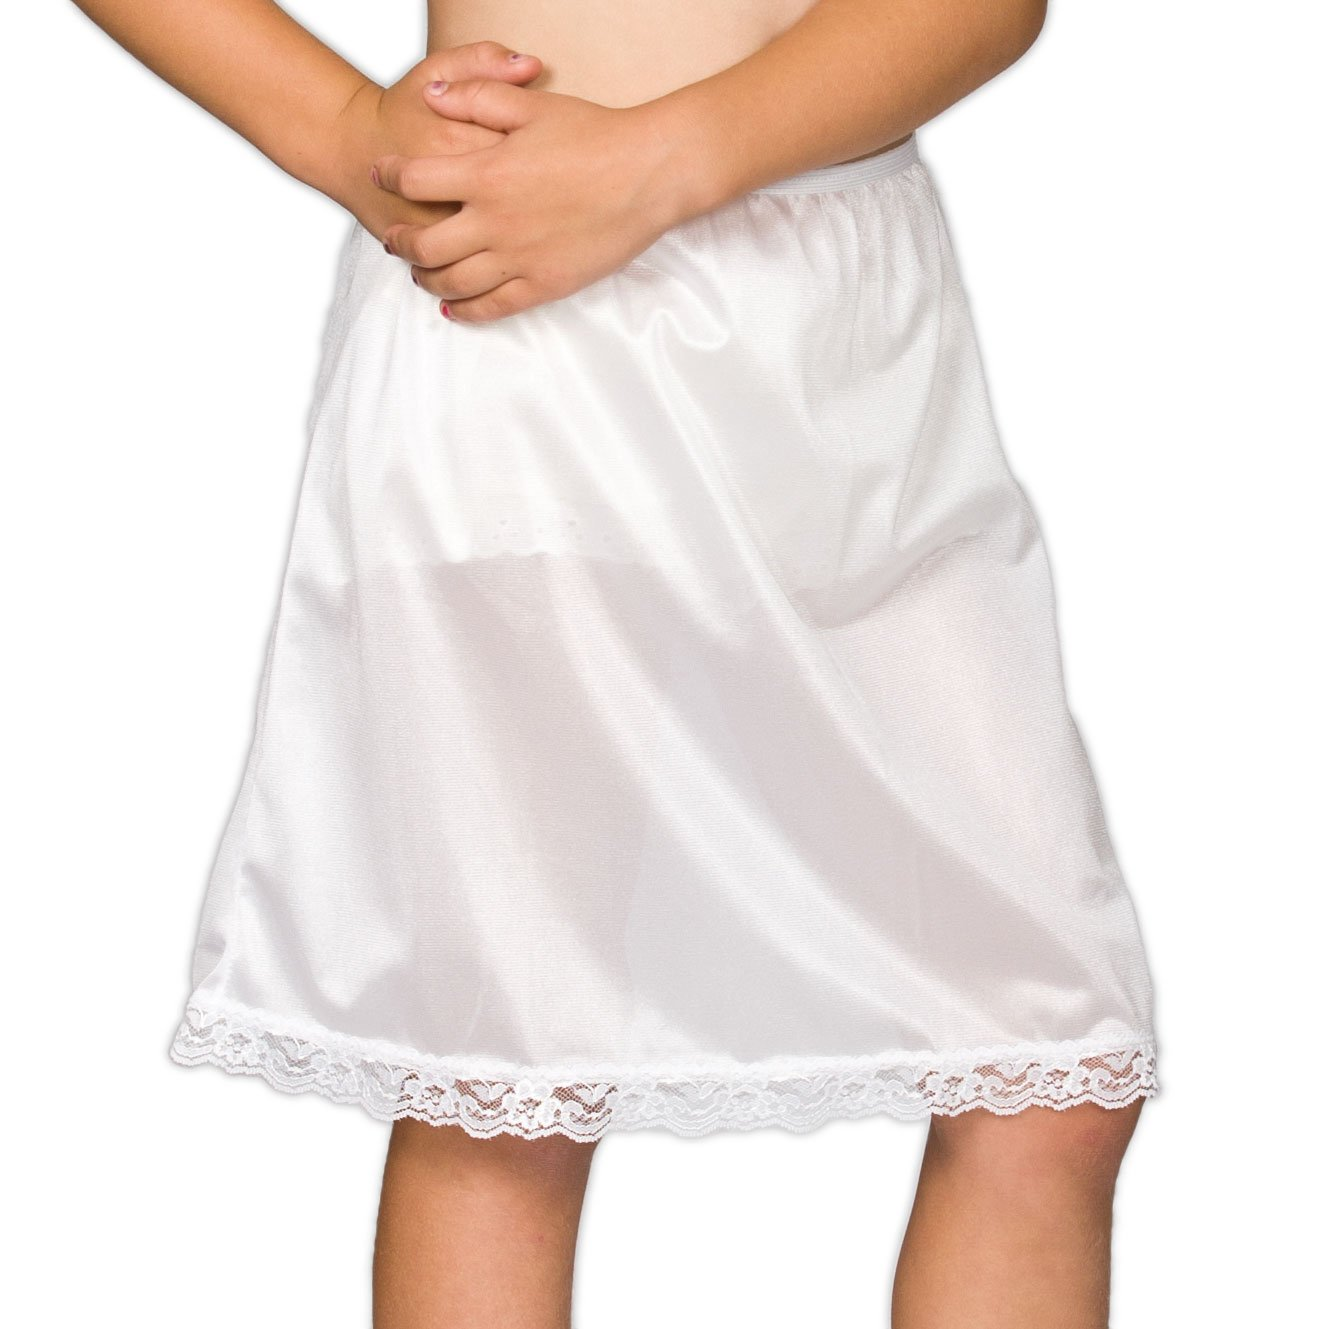 I.C. Collections Big Girls White Nylon Half Slip, 8-14 New ICM 000508-WHC-Can